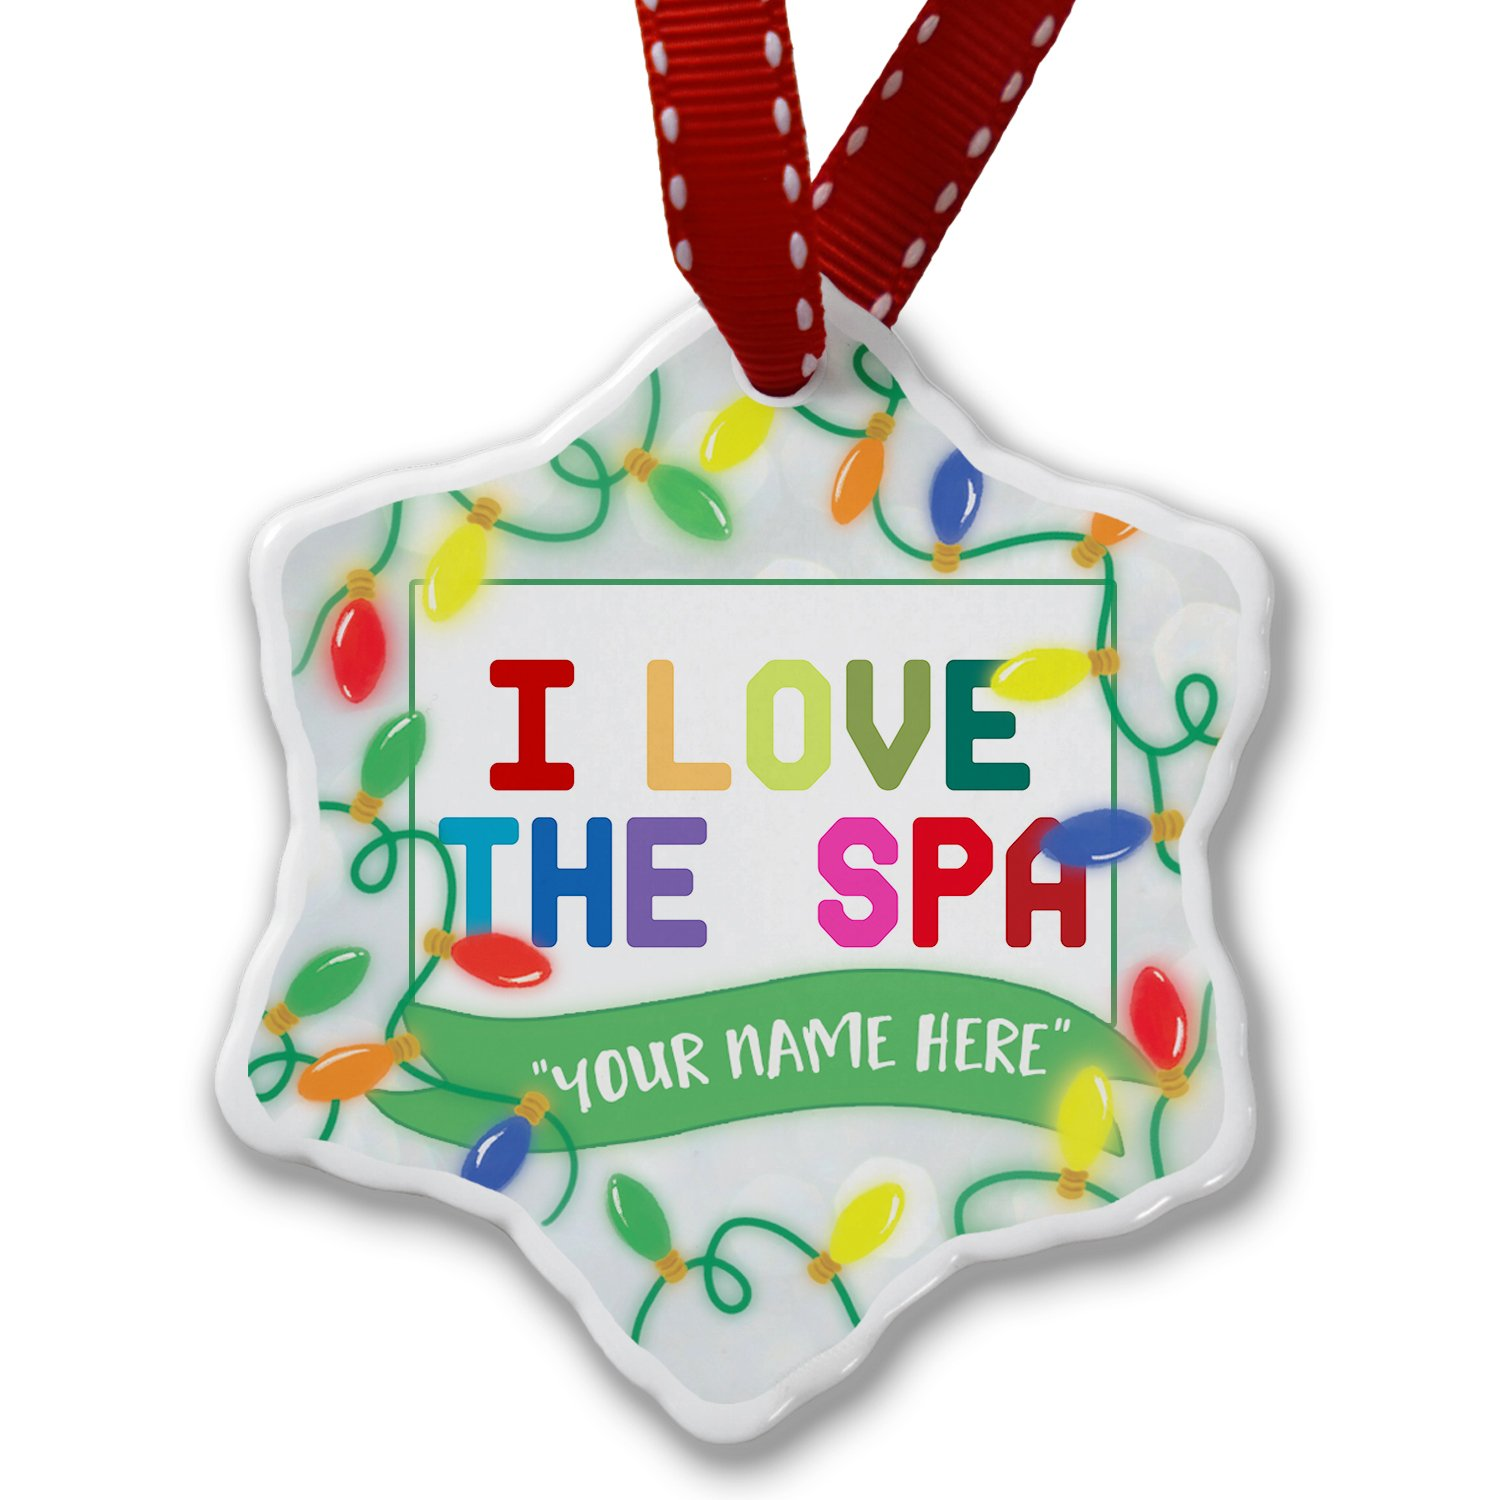 Personalized Name Christmas Ornament, I Love the Spa,Colorful NEONBLOND